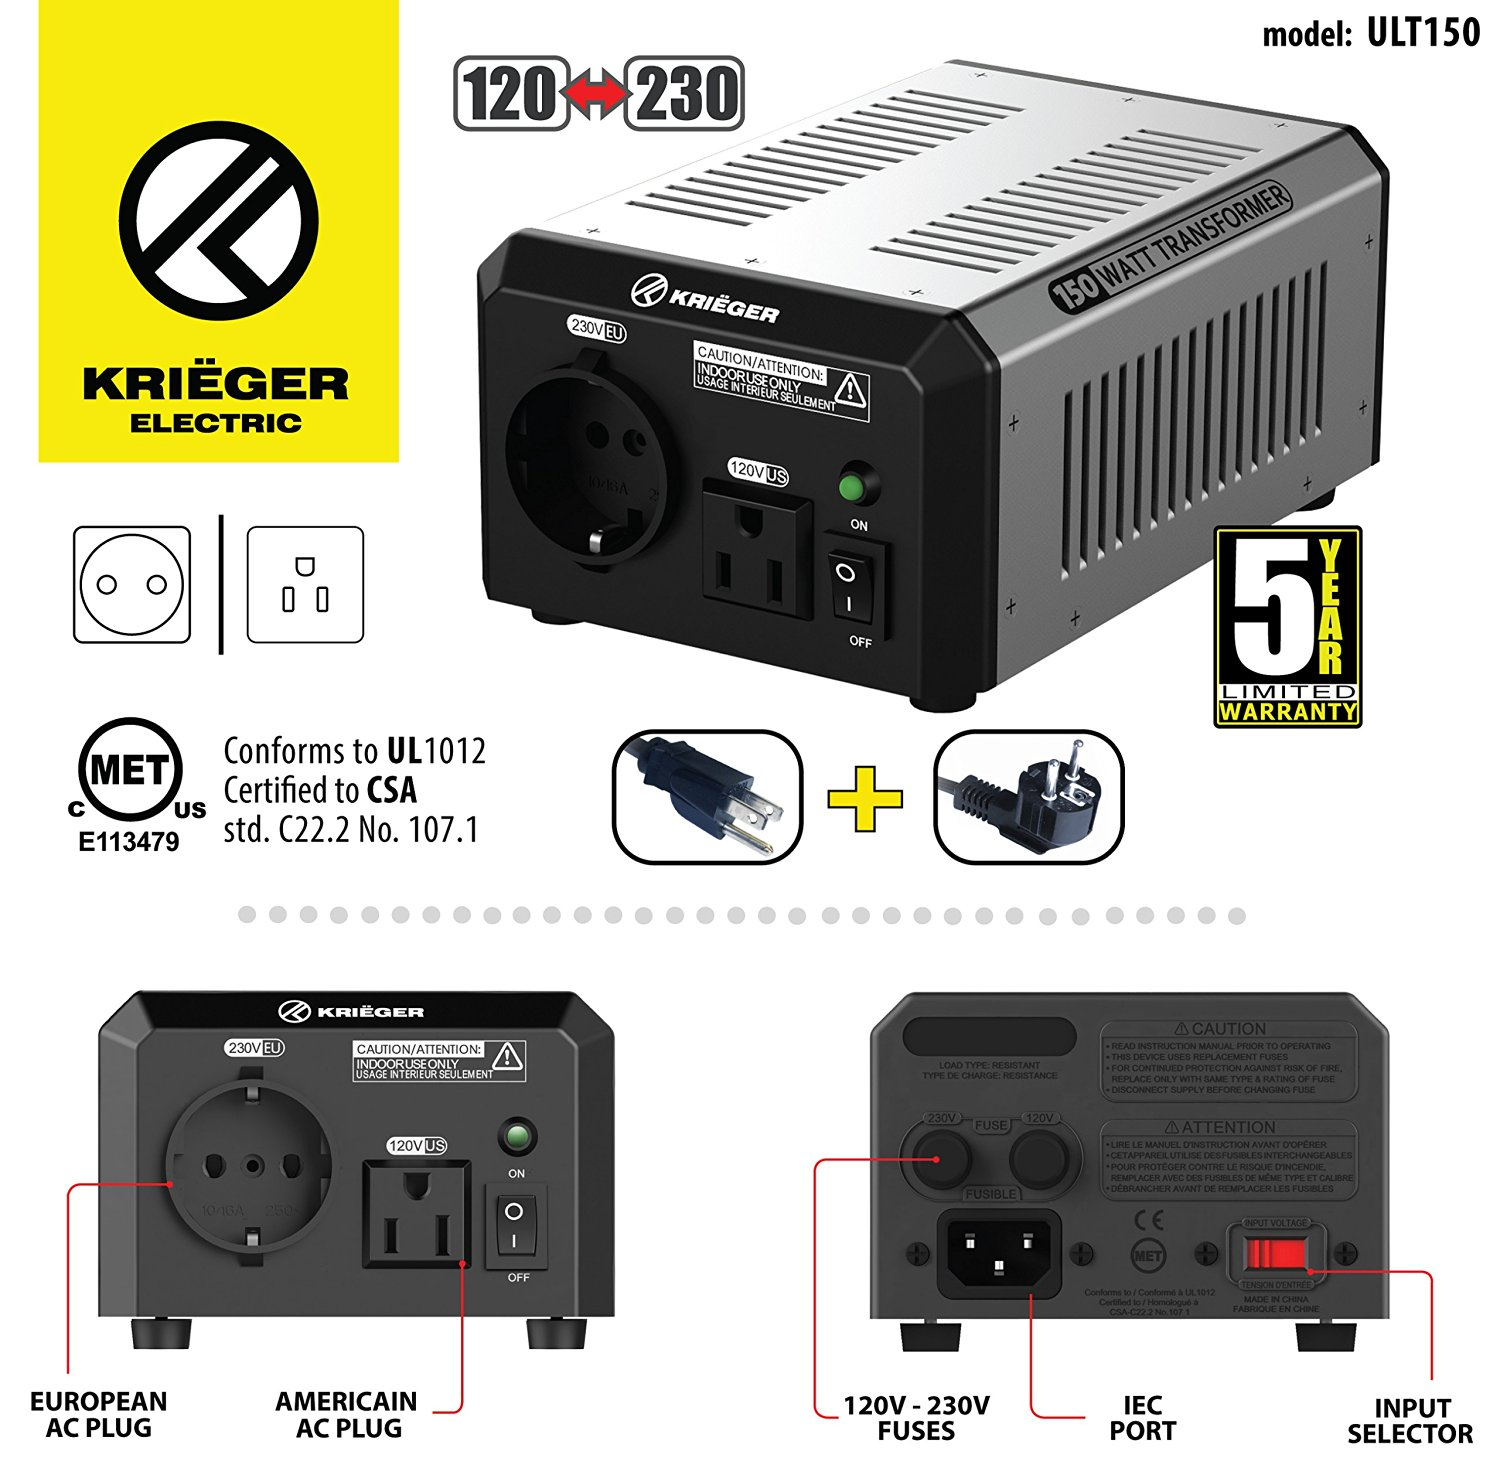 Krieger KRIËGER 150 Watt Voltage Transformer 120V to from 230V AC outlet American European Step up down Converter 50 60 Hz outlets includes IEC German Schuko Nema 5-15P cord connection MET certified approved under UL CSA ULT150